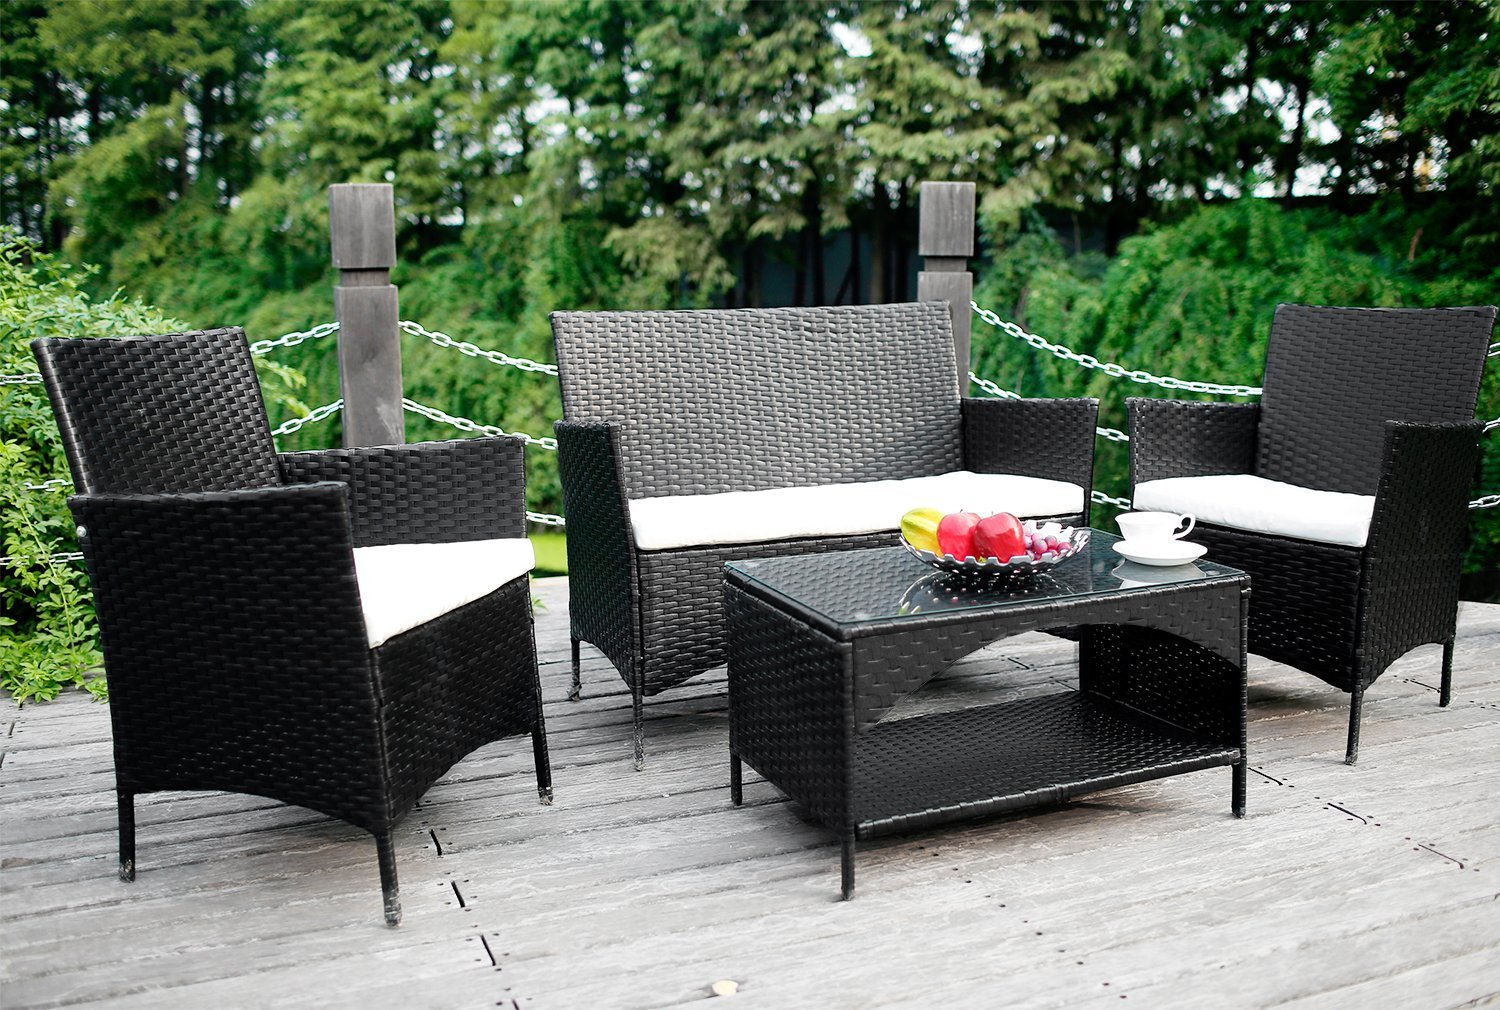 Rattan Table And Chairs Garden Furniture Review merax 4 piece outdoor rattan patio furniture set cozy home 101 review merax 4 piece outdoor rattan patio furniture set workwithnaturefo